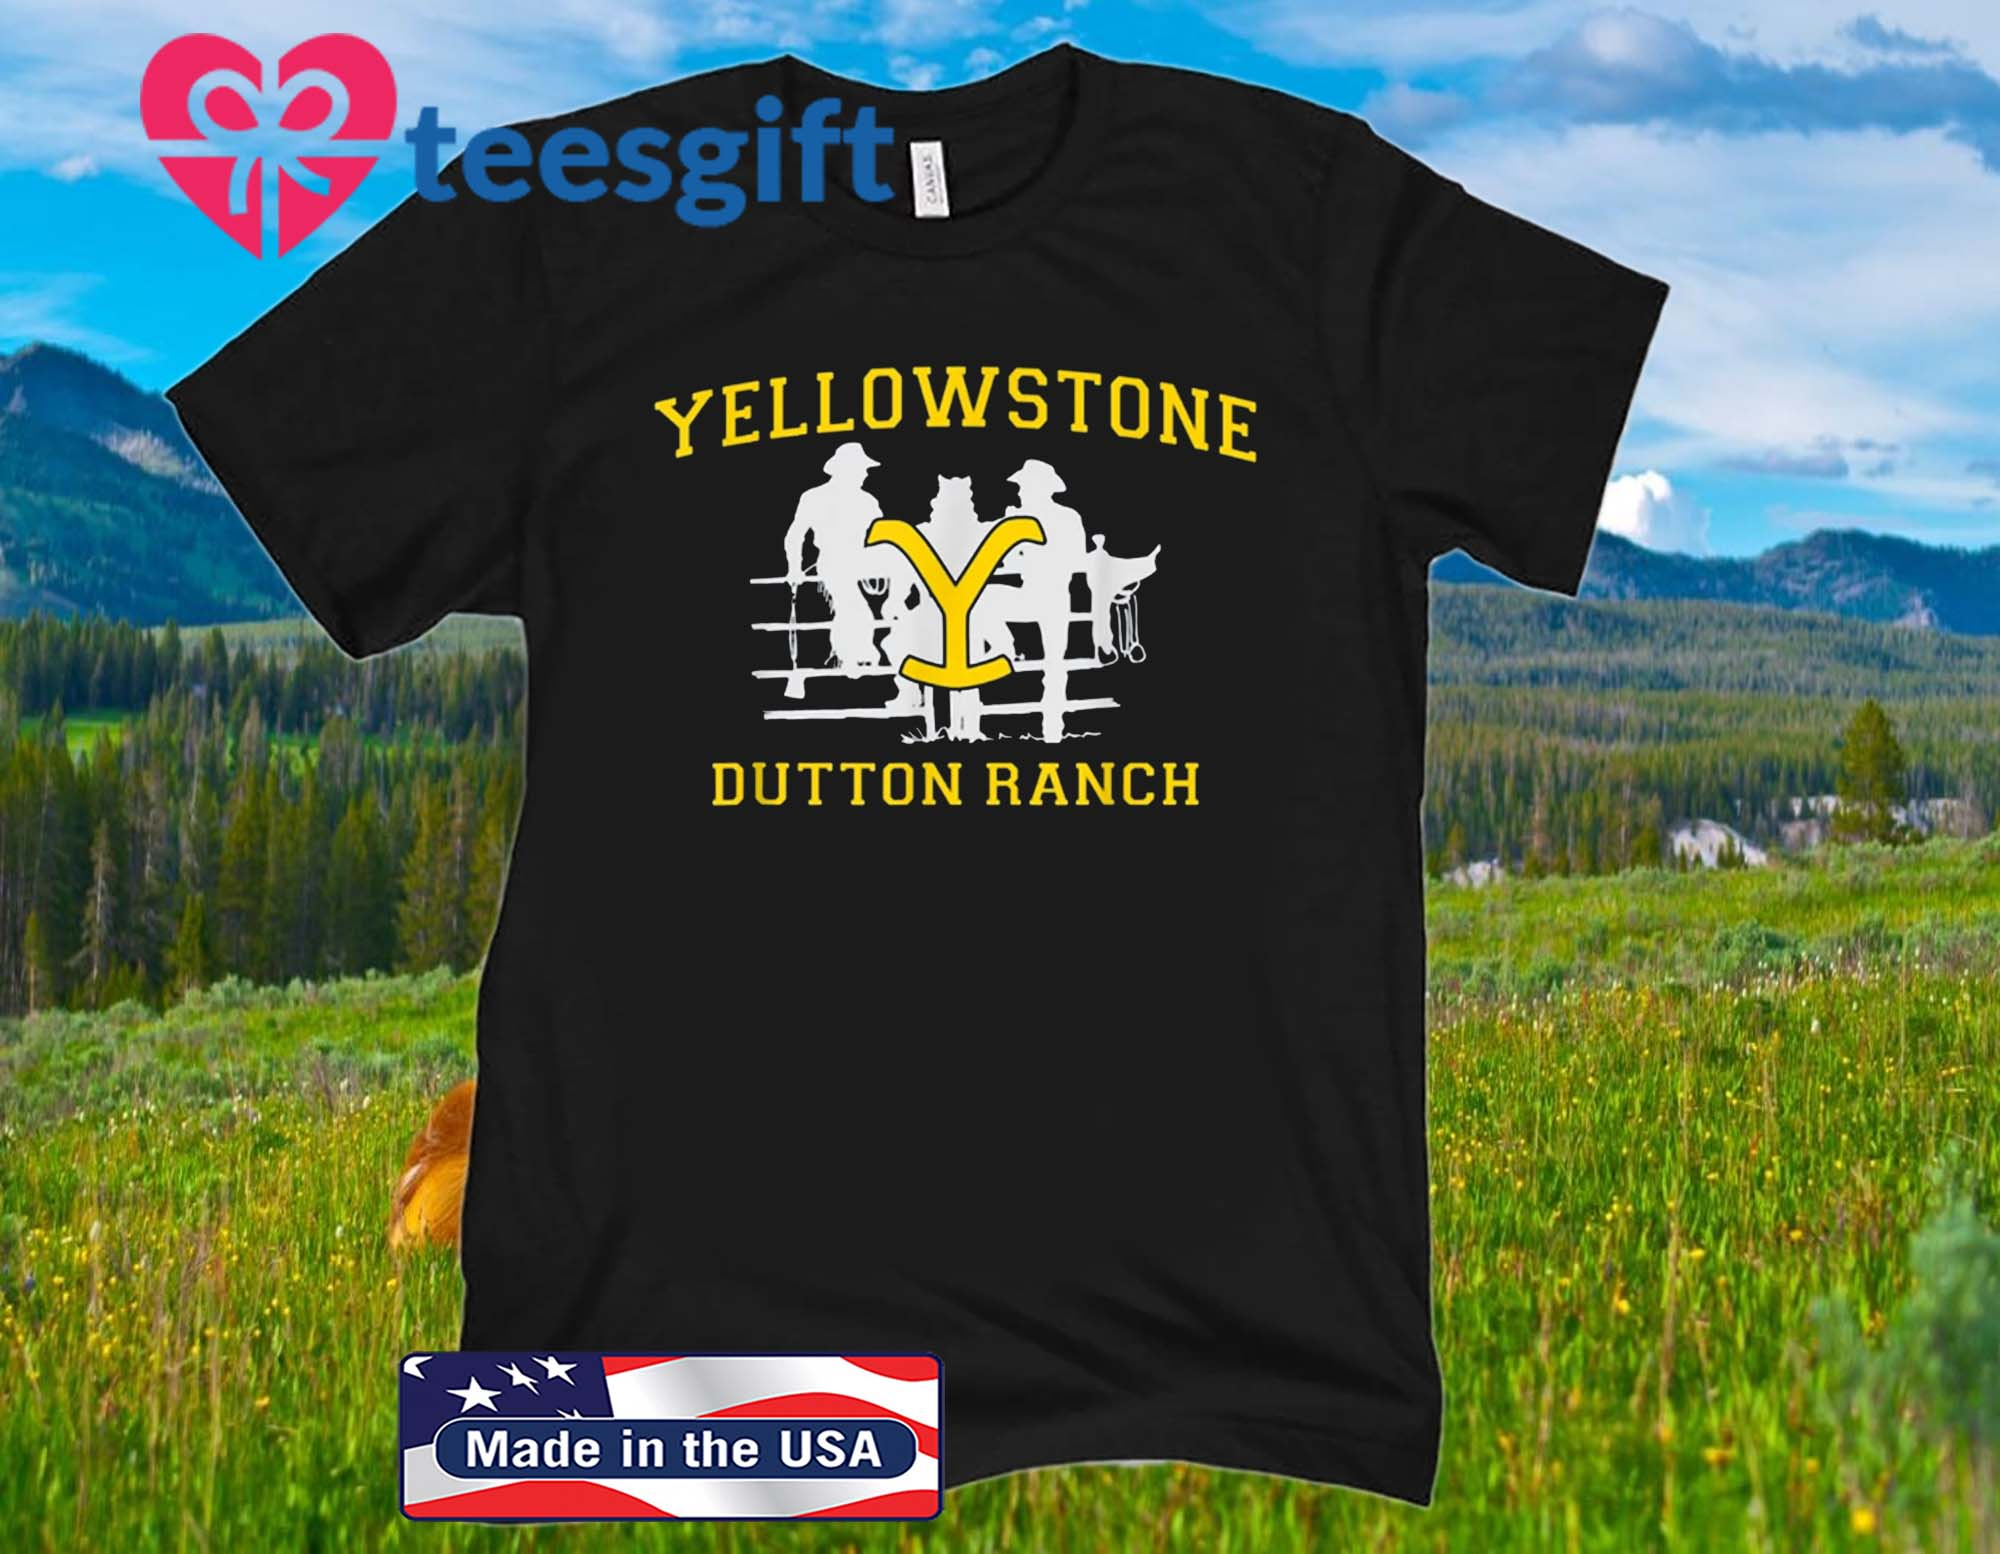 Yellowstone Dutton Ranch T-Shirt